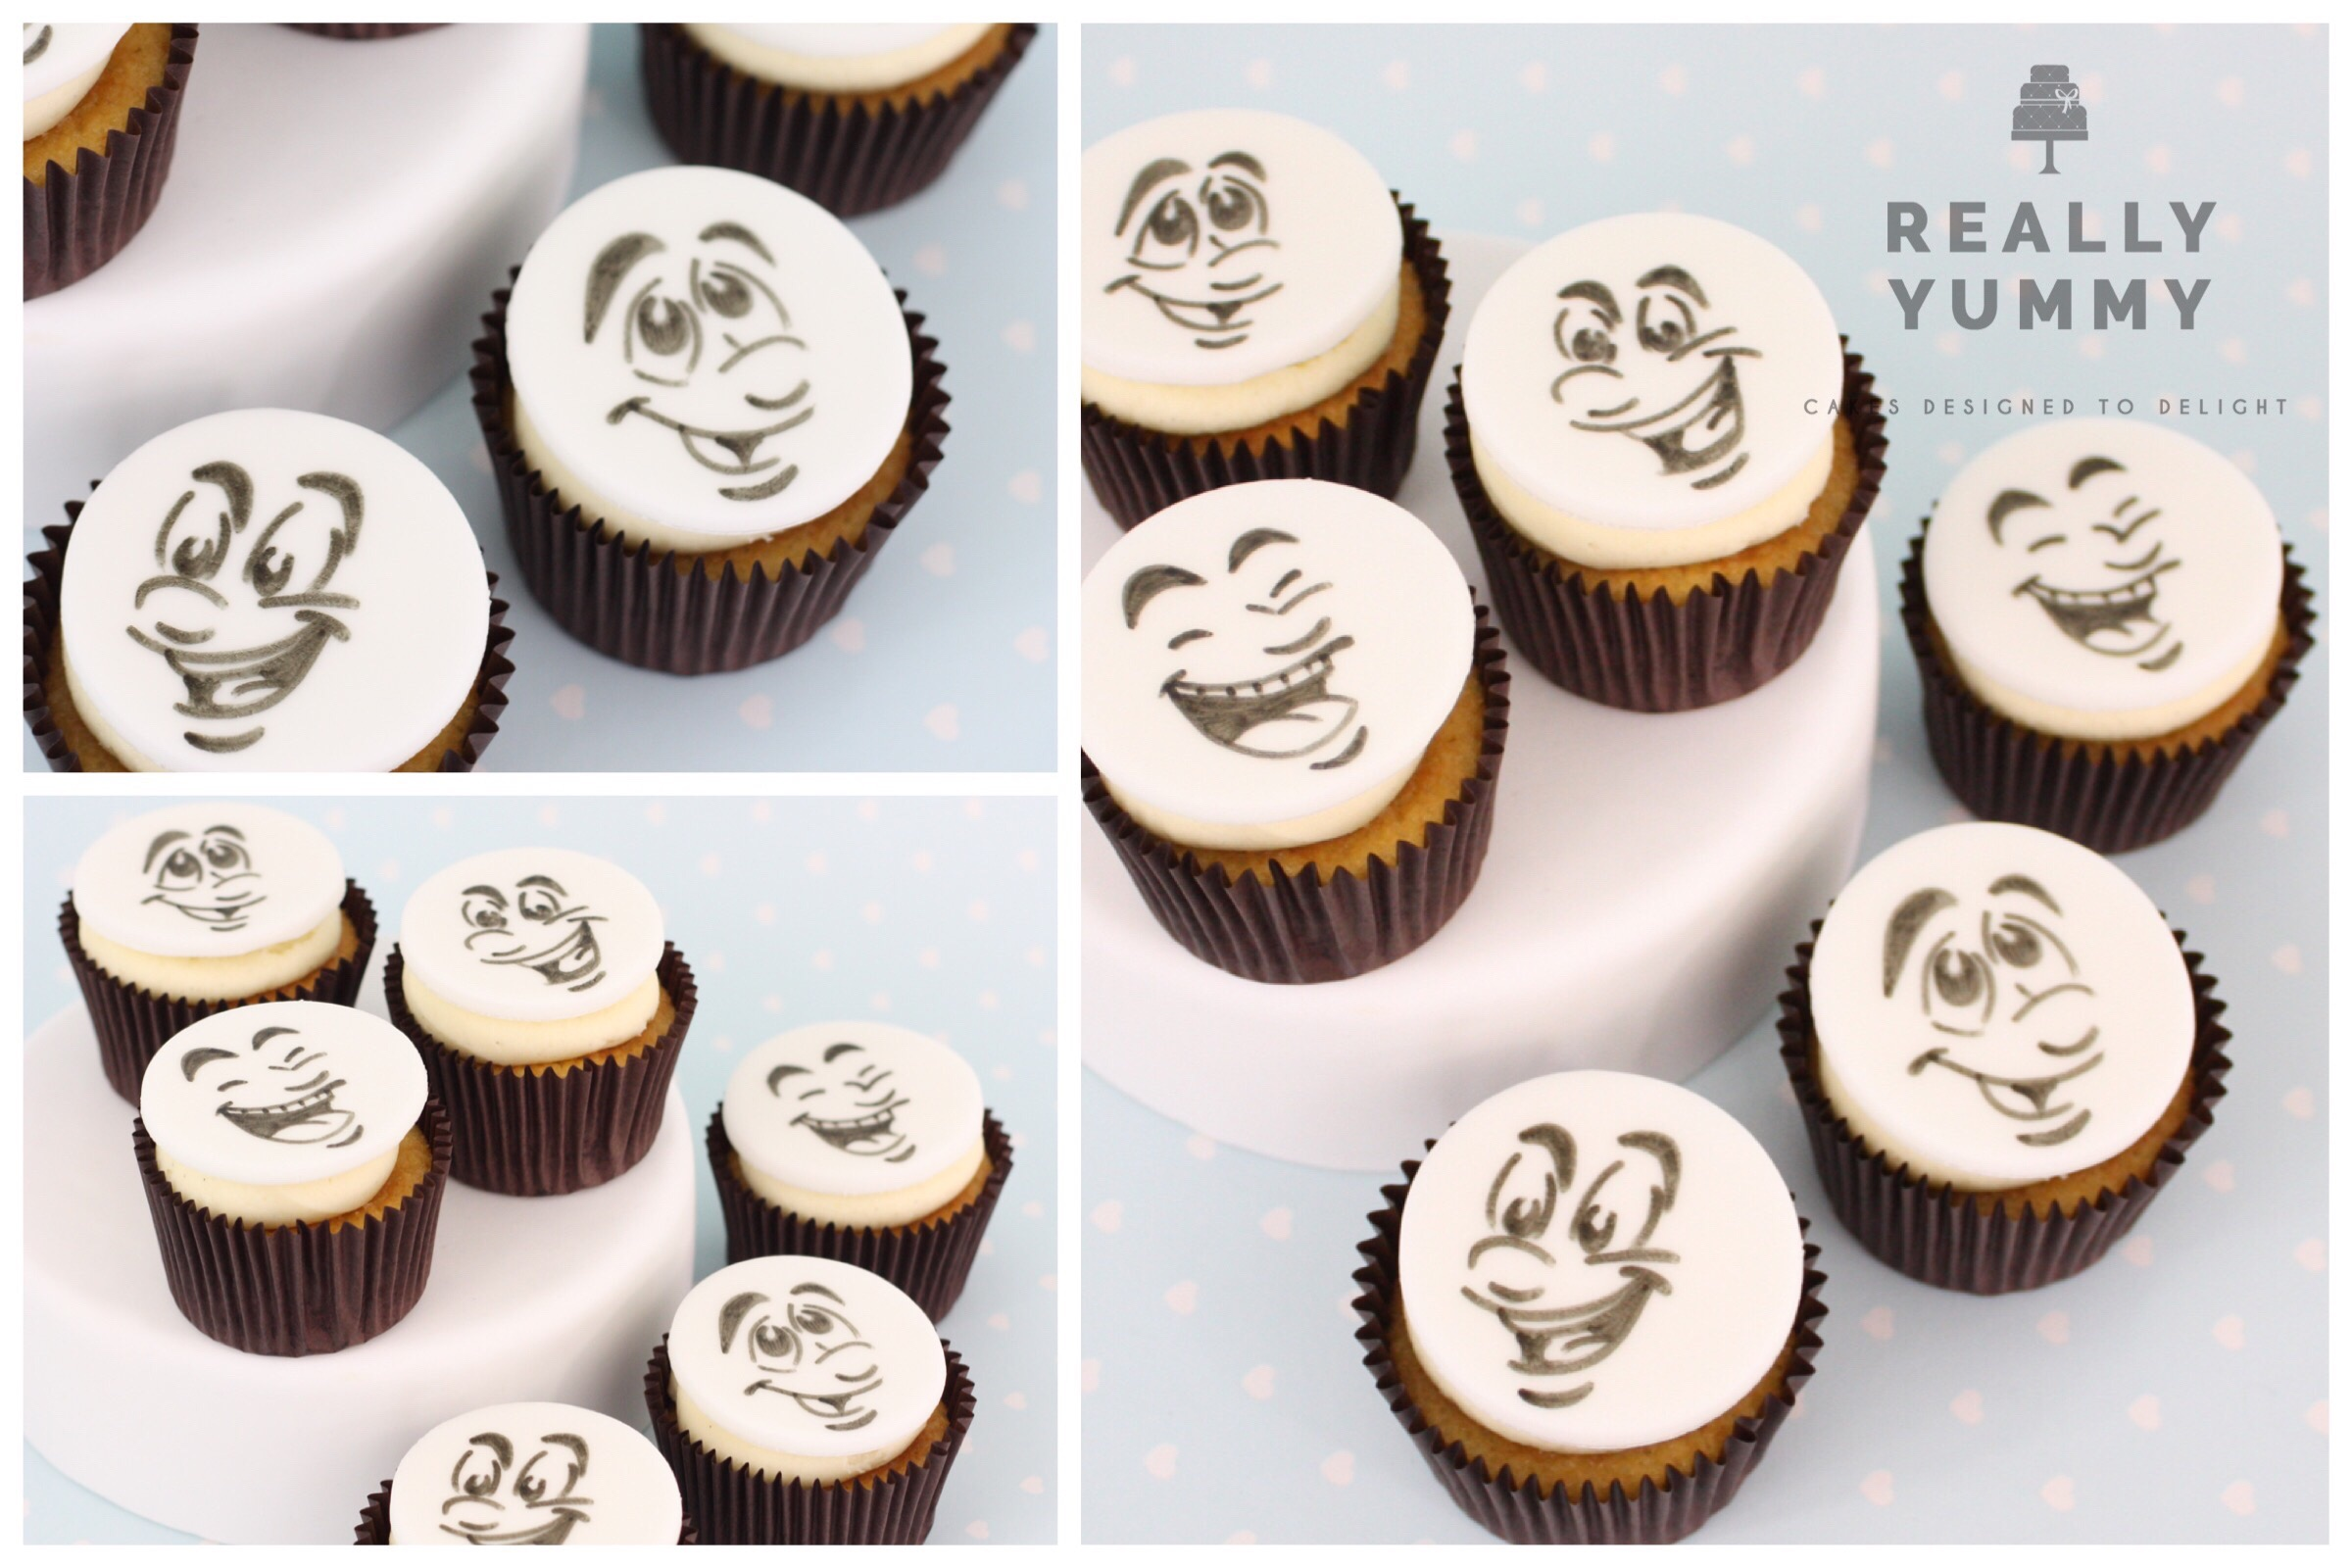 Smiling faces cupcakes